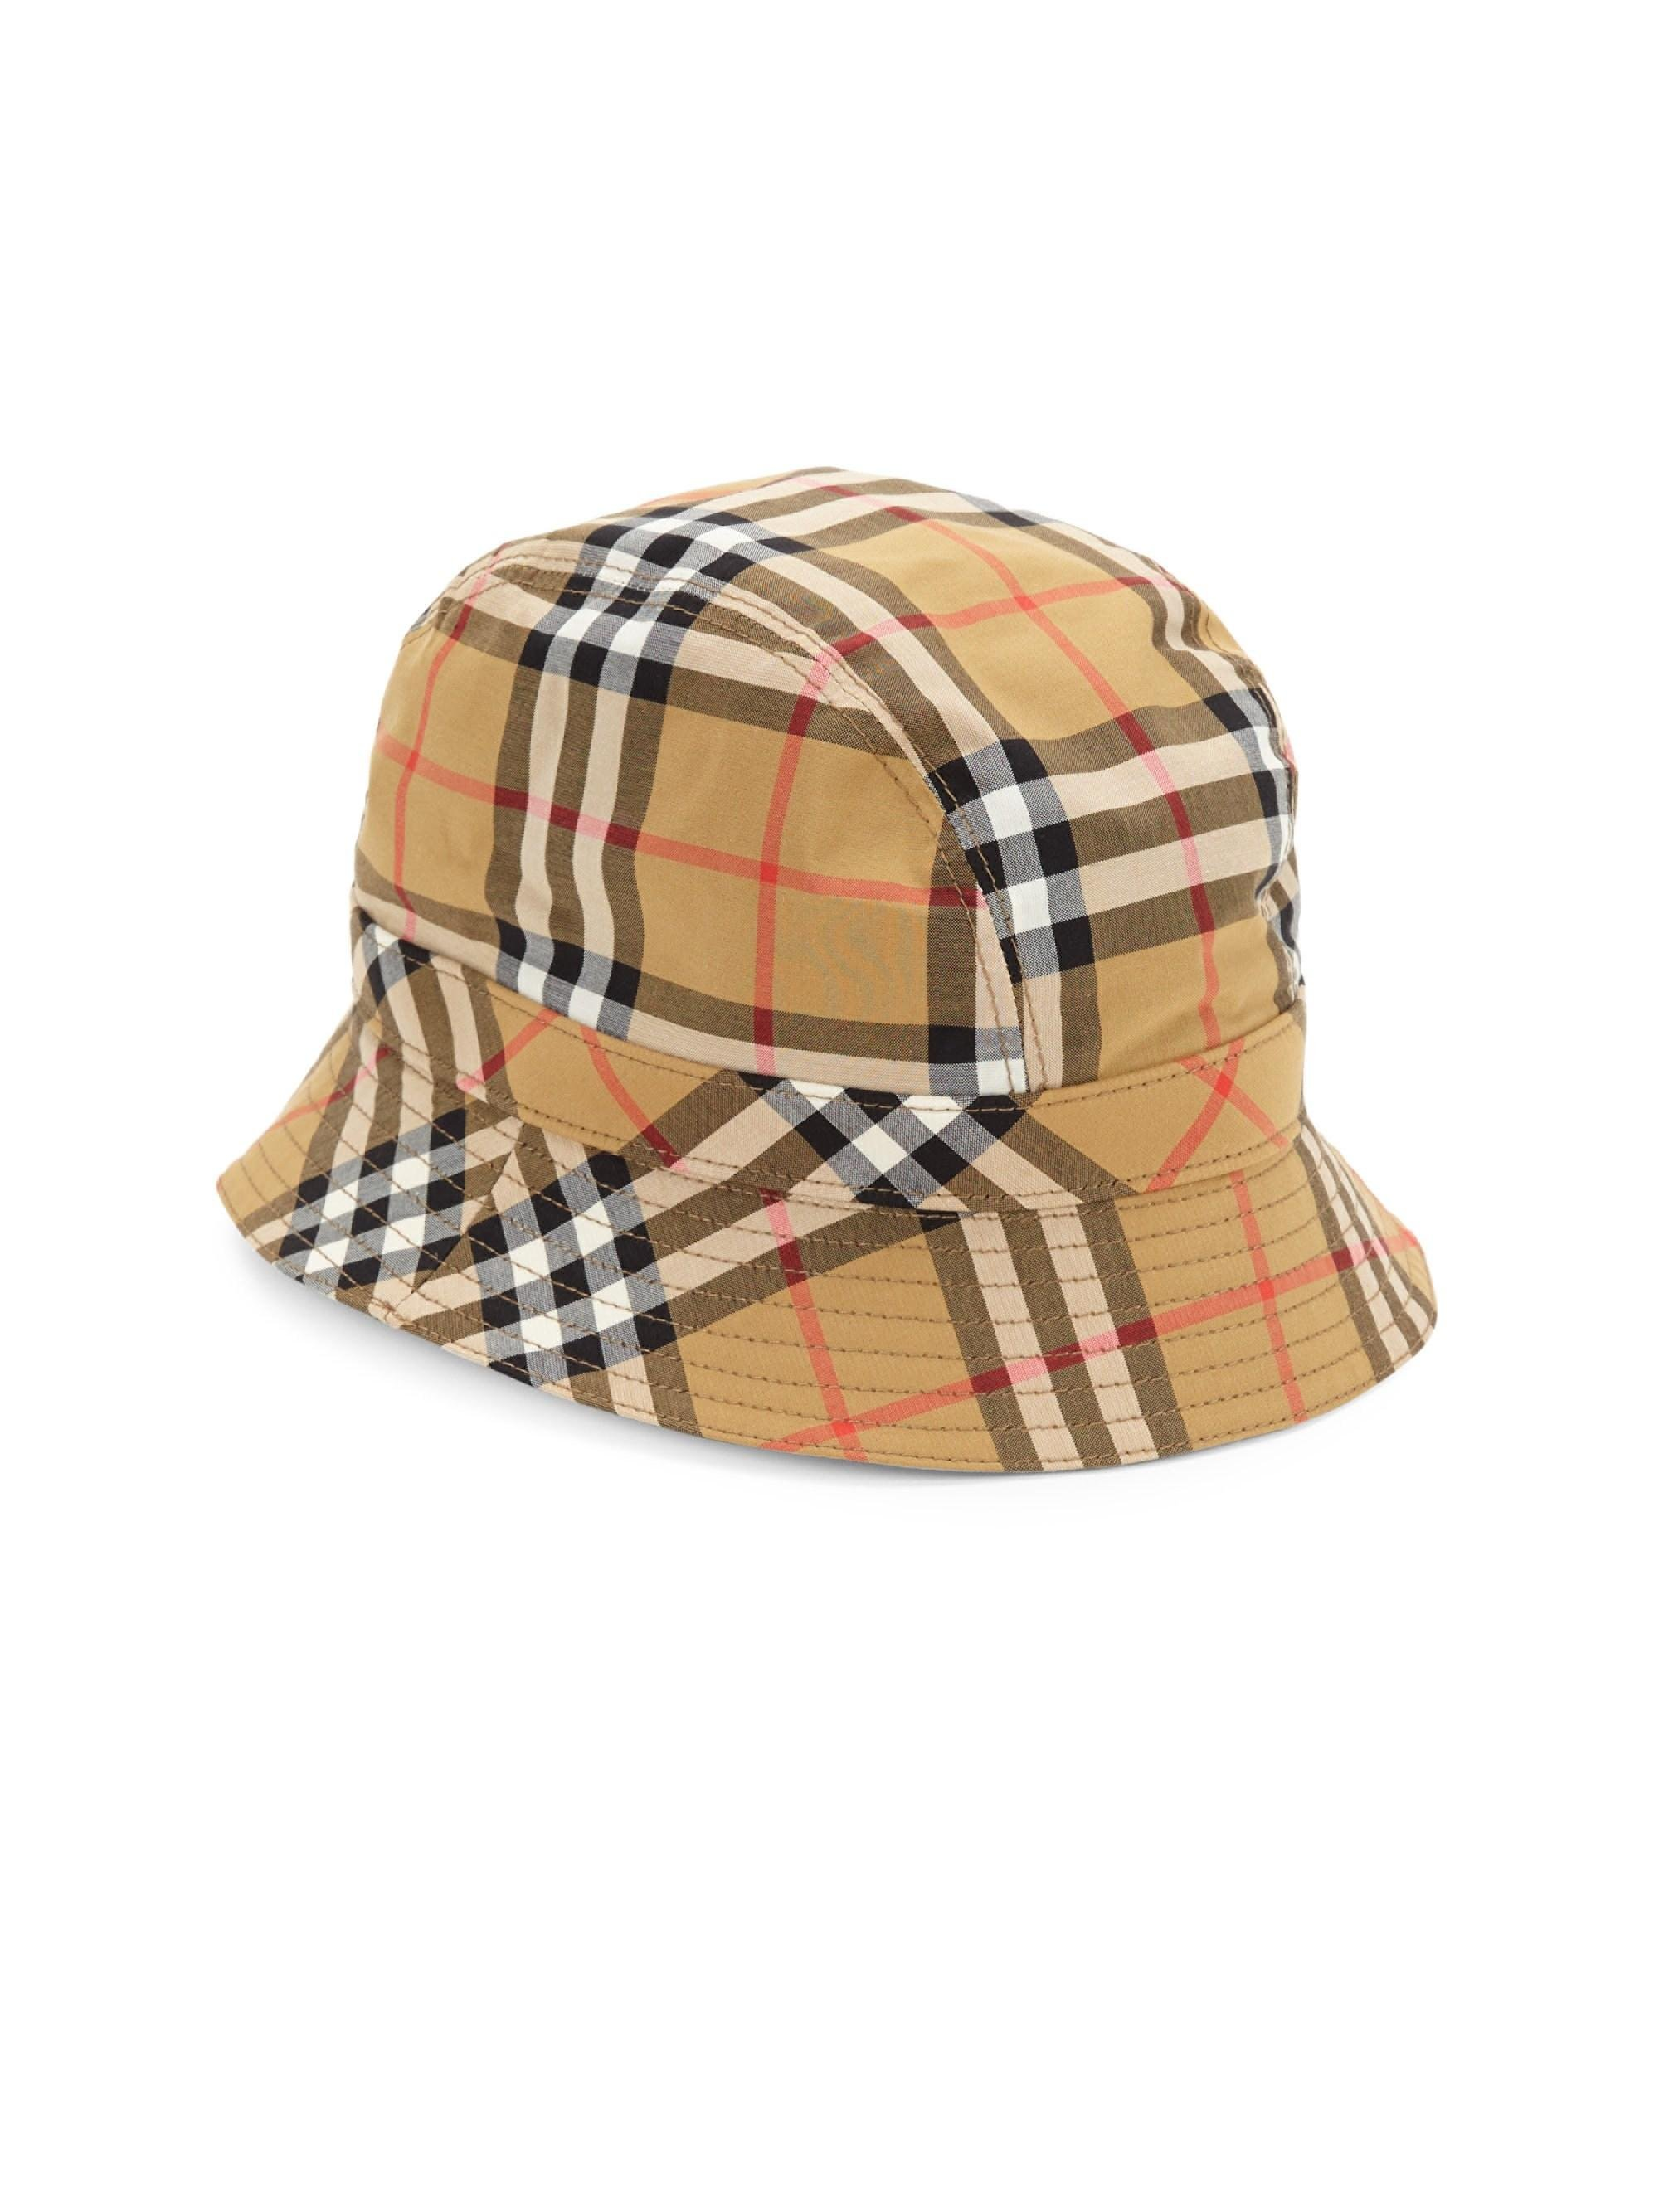 3cf6a358408 Burberry Women s Rainbow Check Bucket Hat - Antique Yellow - Size ...